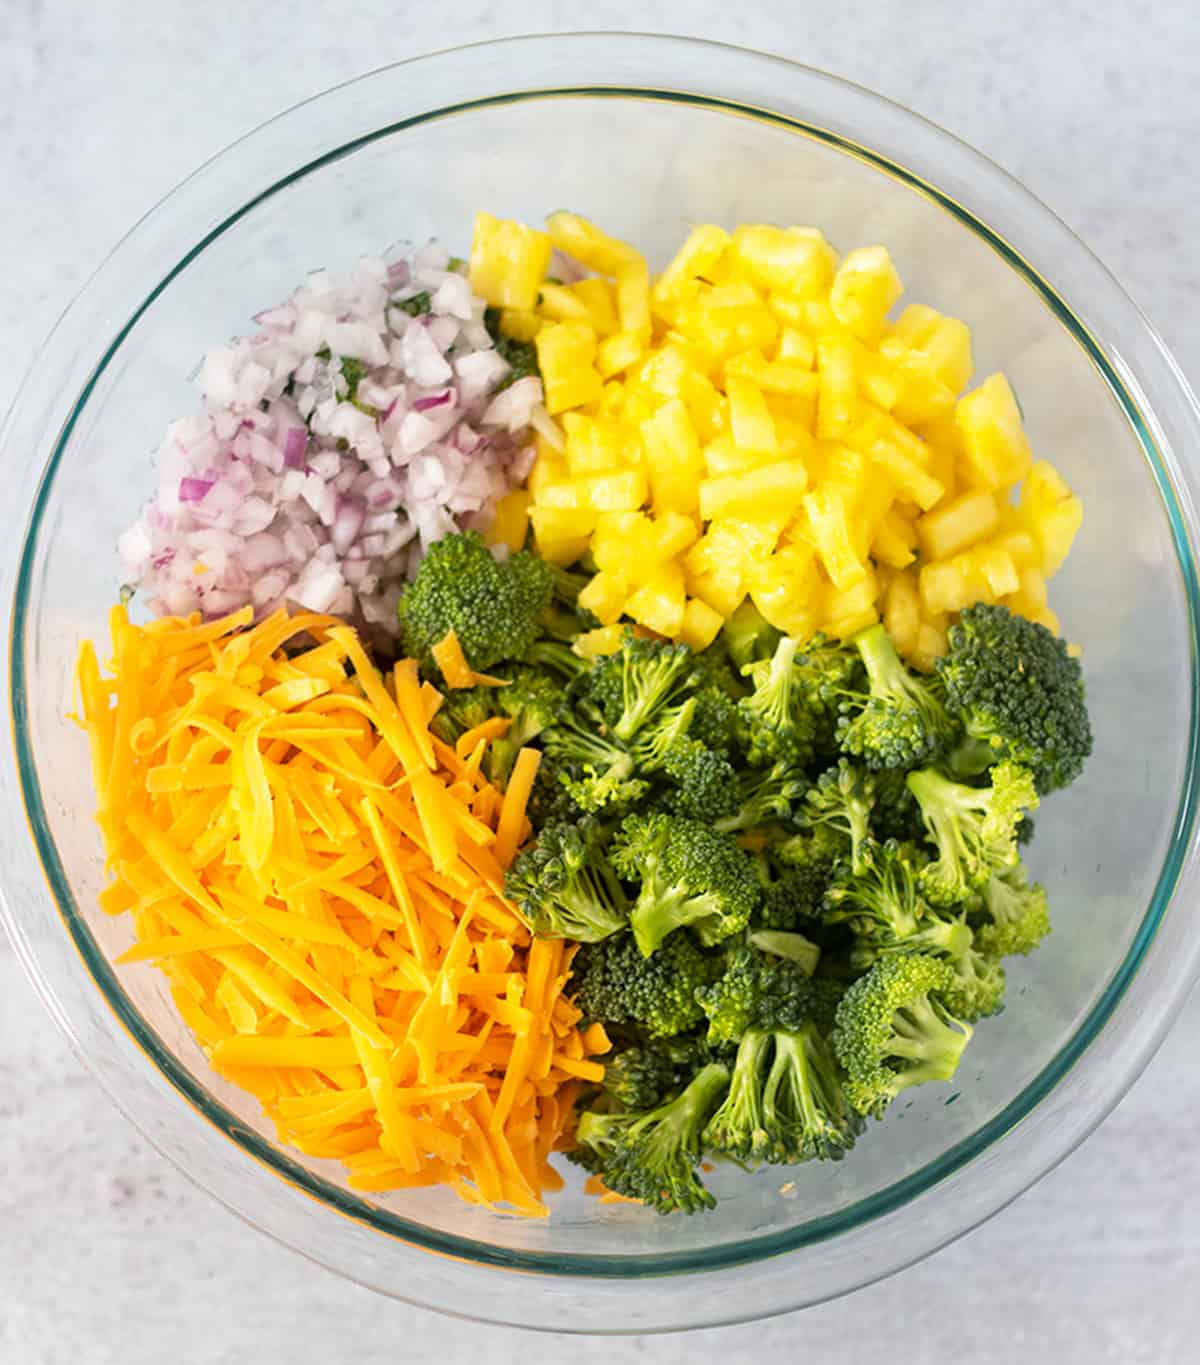 broccoli florets, diced pineapple, red onion and cheddar cheese in a clear mixing bowl.